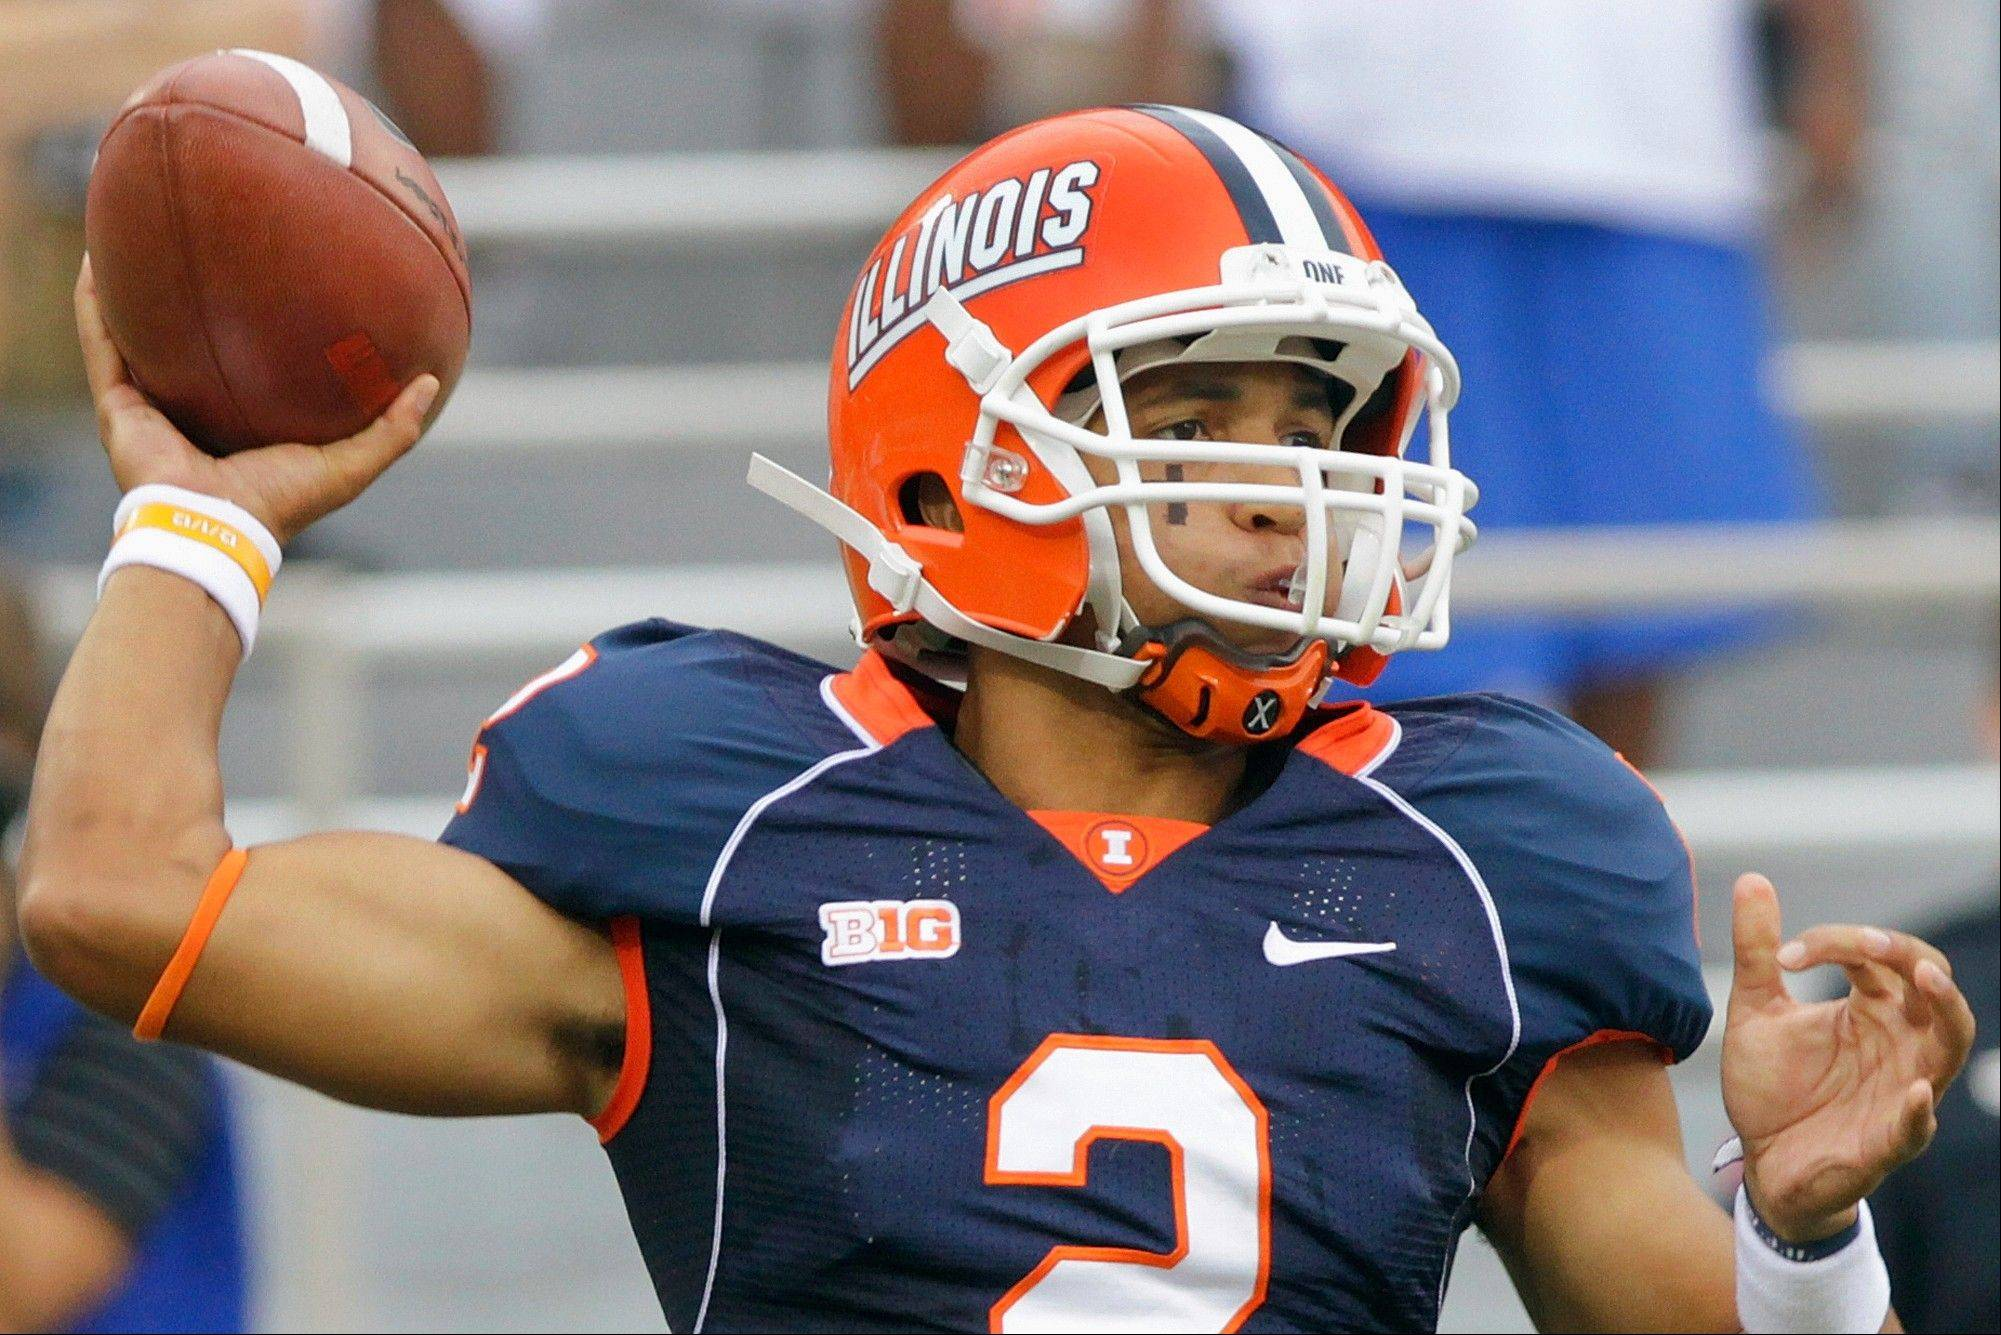 Illini head coach Tim Beckman isn�t expected to announce whether starting QB Nathan Scheelhaase, who injured his ankle in the Western Michigan game, will be allowed to play Saturday at Arizona State. Scheelhaase practiced Wednesday and Beckman said he appears to be making progress.